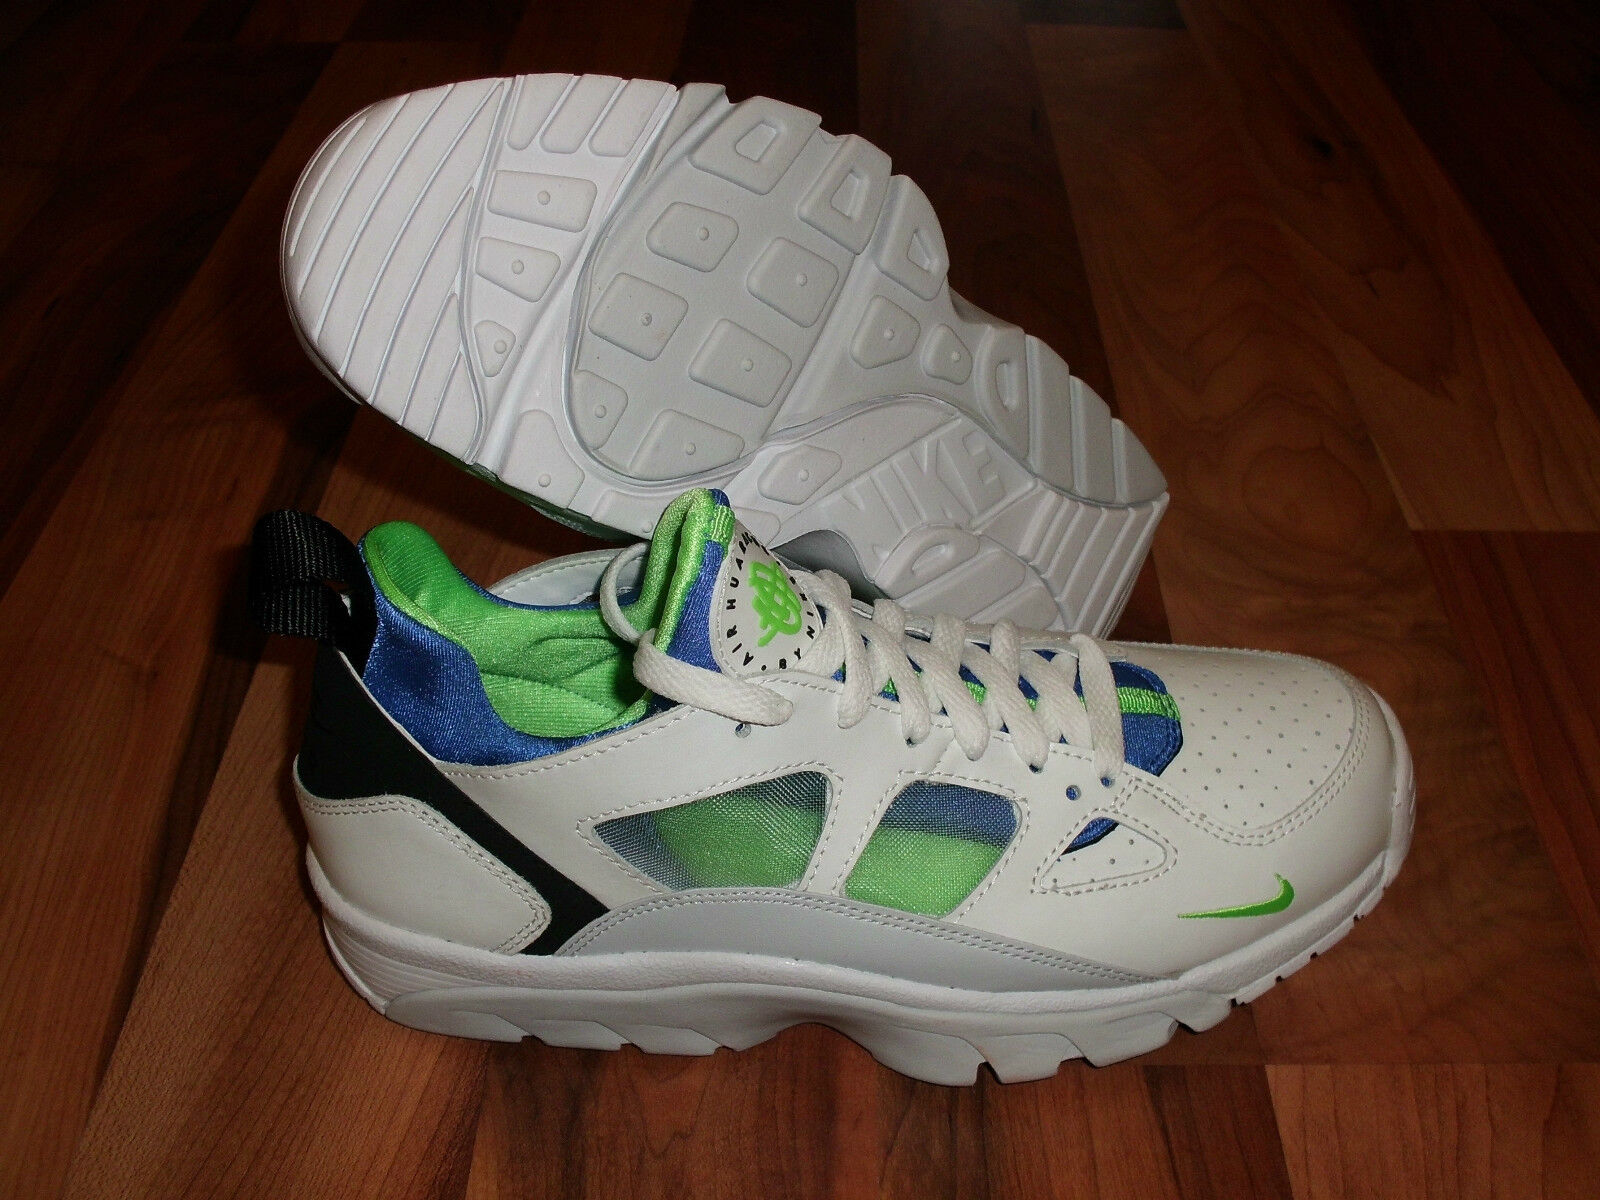 Nike Men's Air Trainer Huarache Low SCREAM GREEN/WHITE/BLUE Price reduction